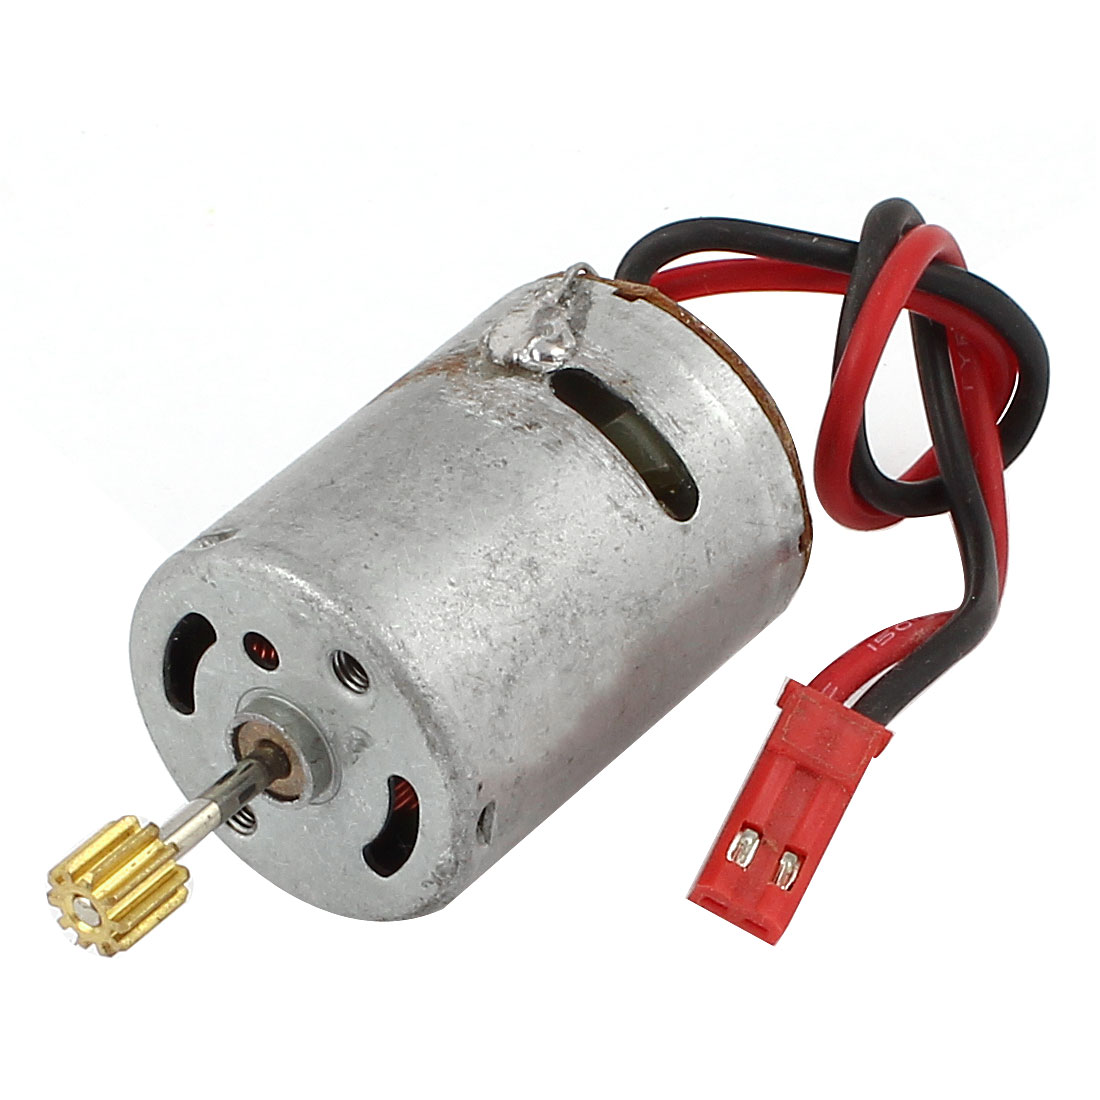 28000RPM Speed DC 7.4V Rear Motor for RC Model KZ999-777/888 Aircraft Airplane